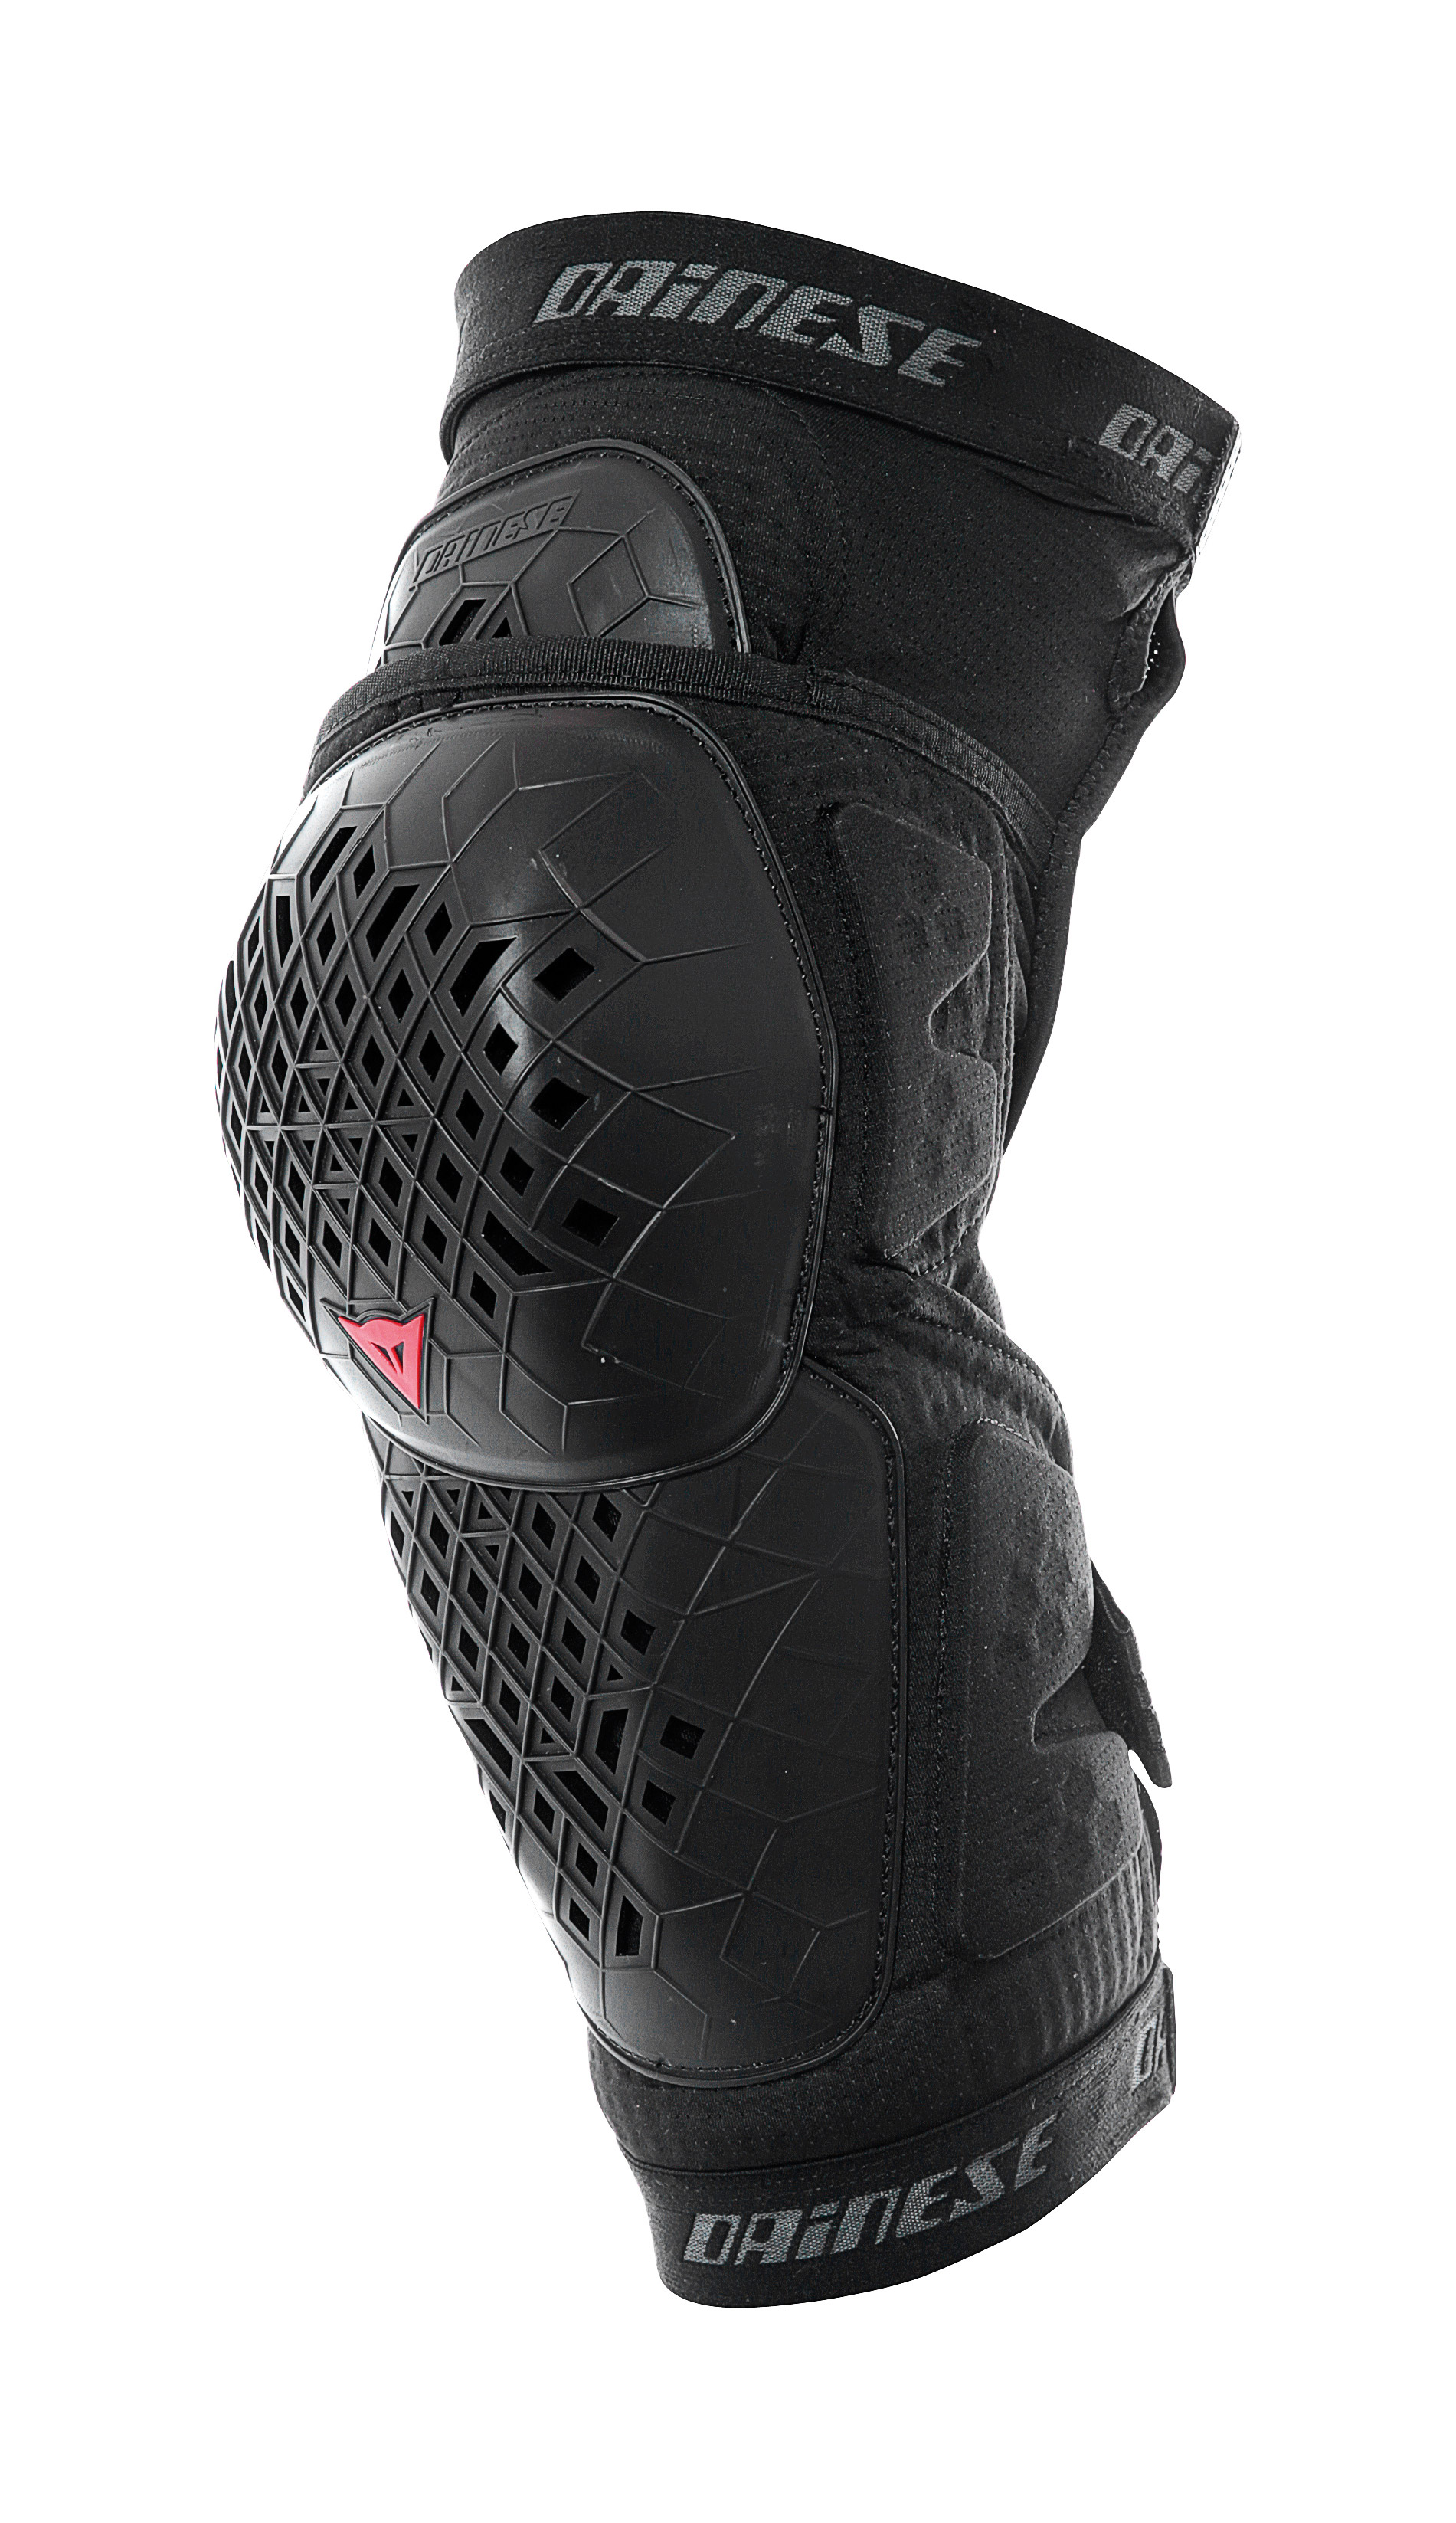 Dainese-Armoform-Knee-Guard-M